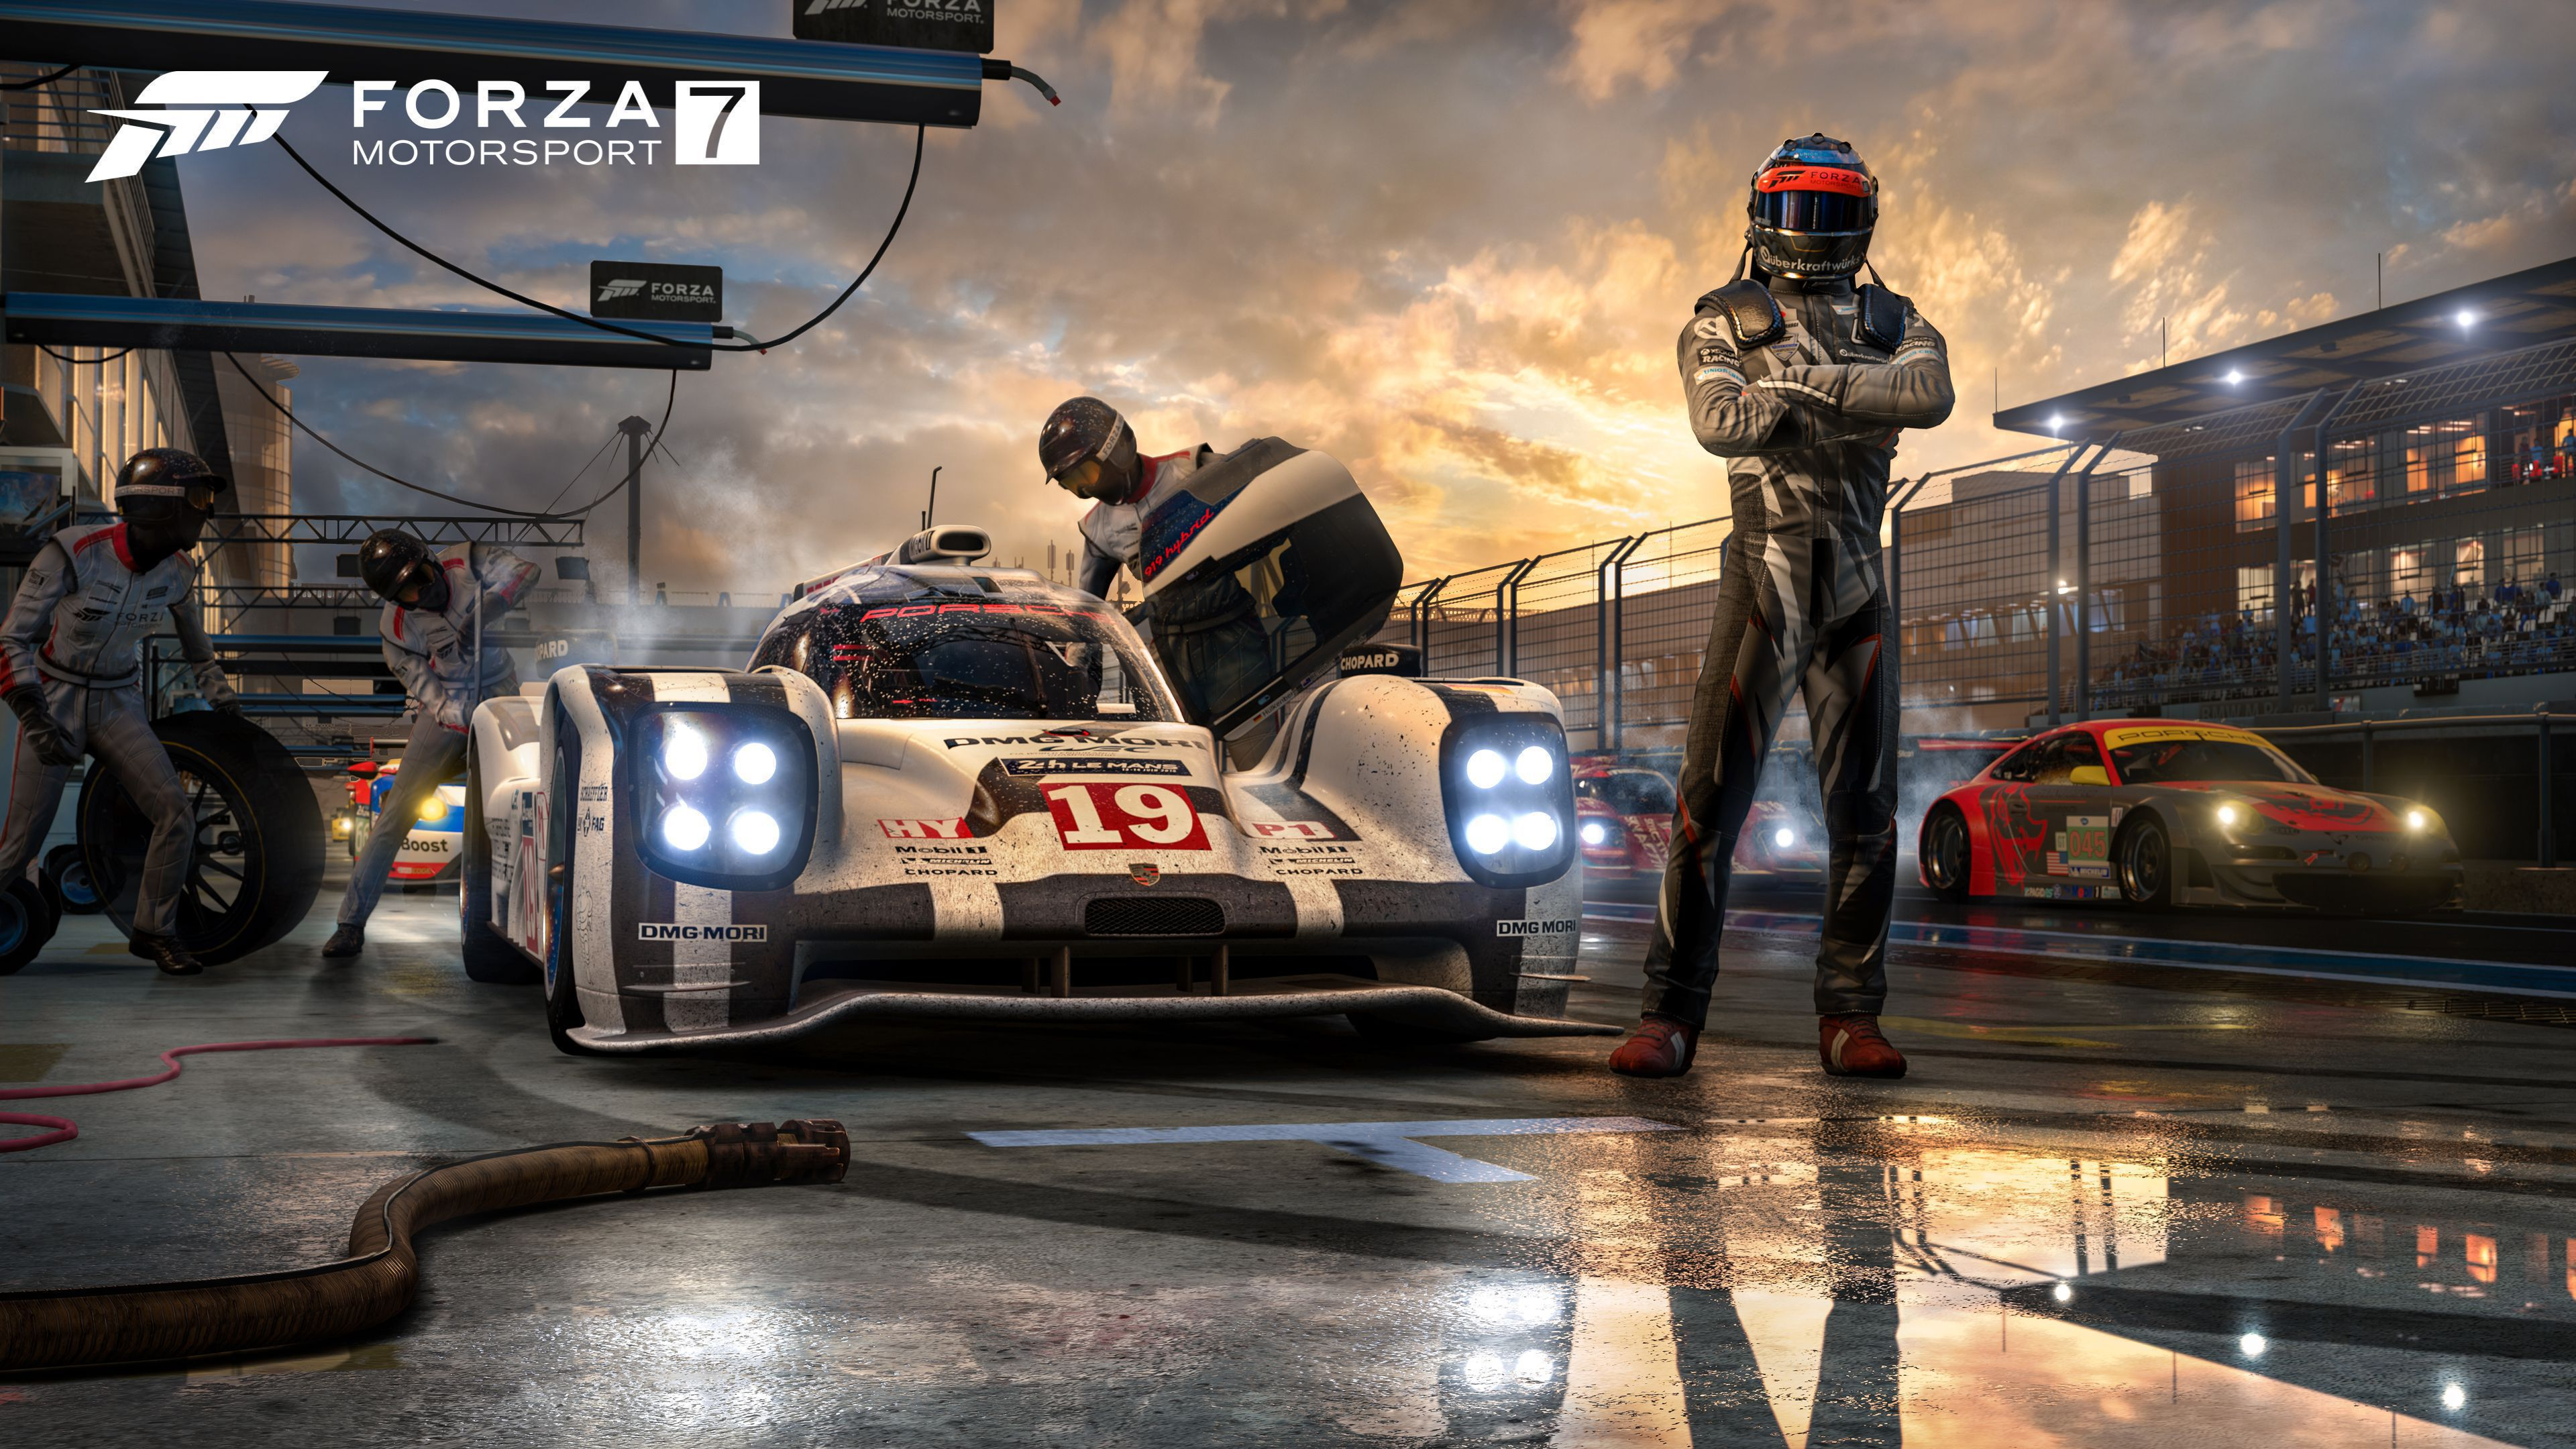 Picture Forza Motorsport 7